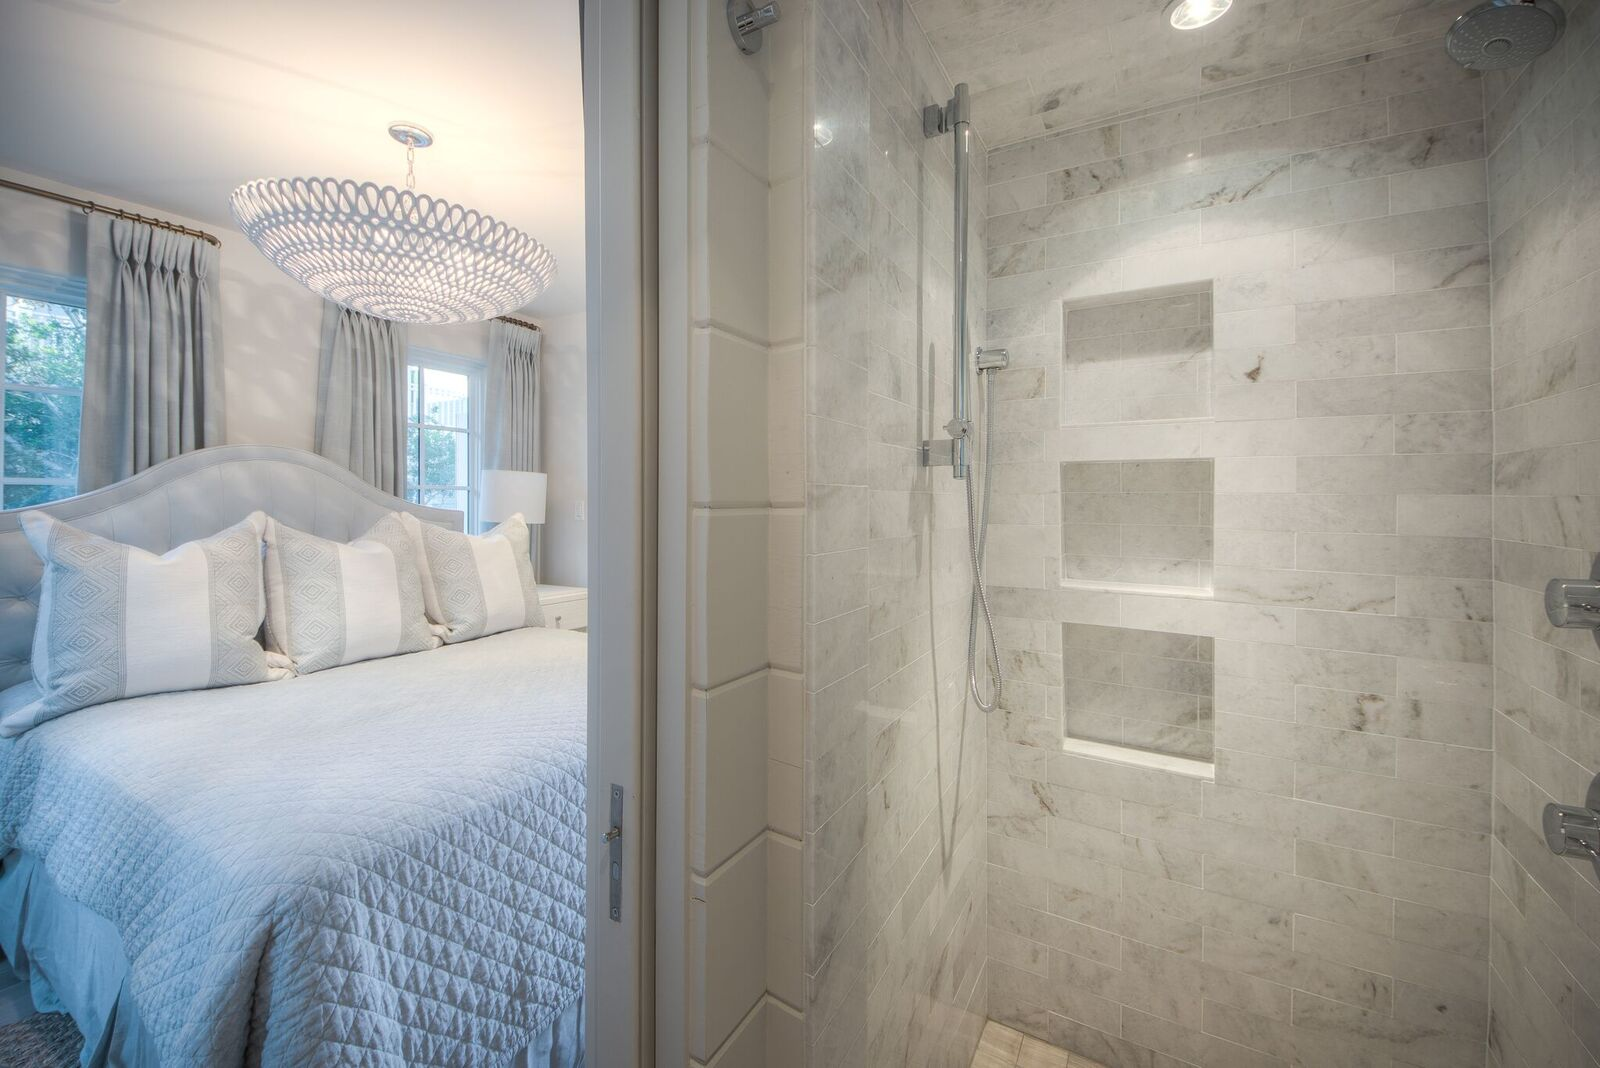 Queen bedroom with vanity in room and large shower and toilet adjacent to it